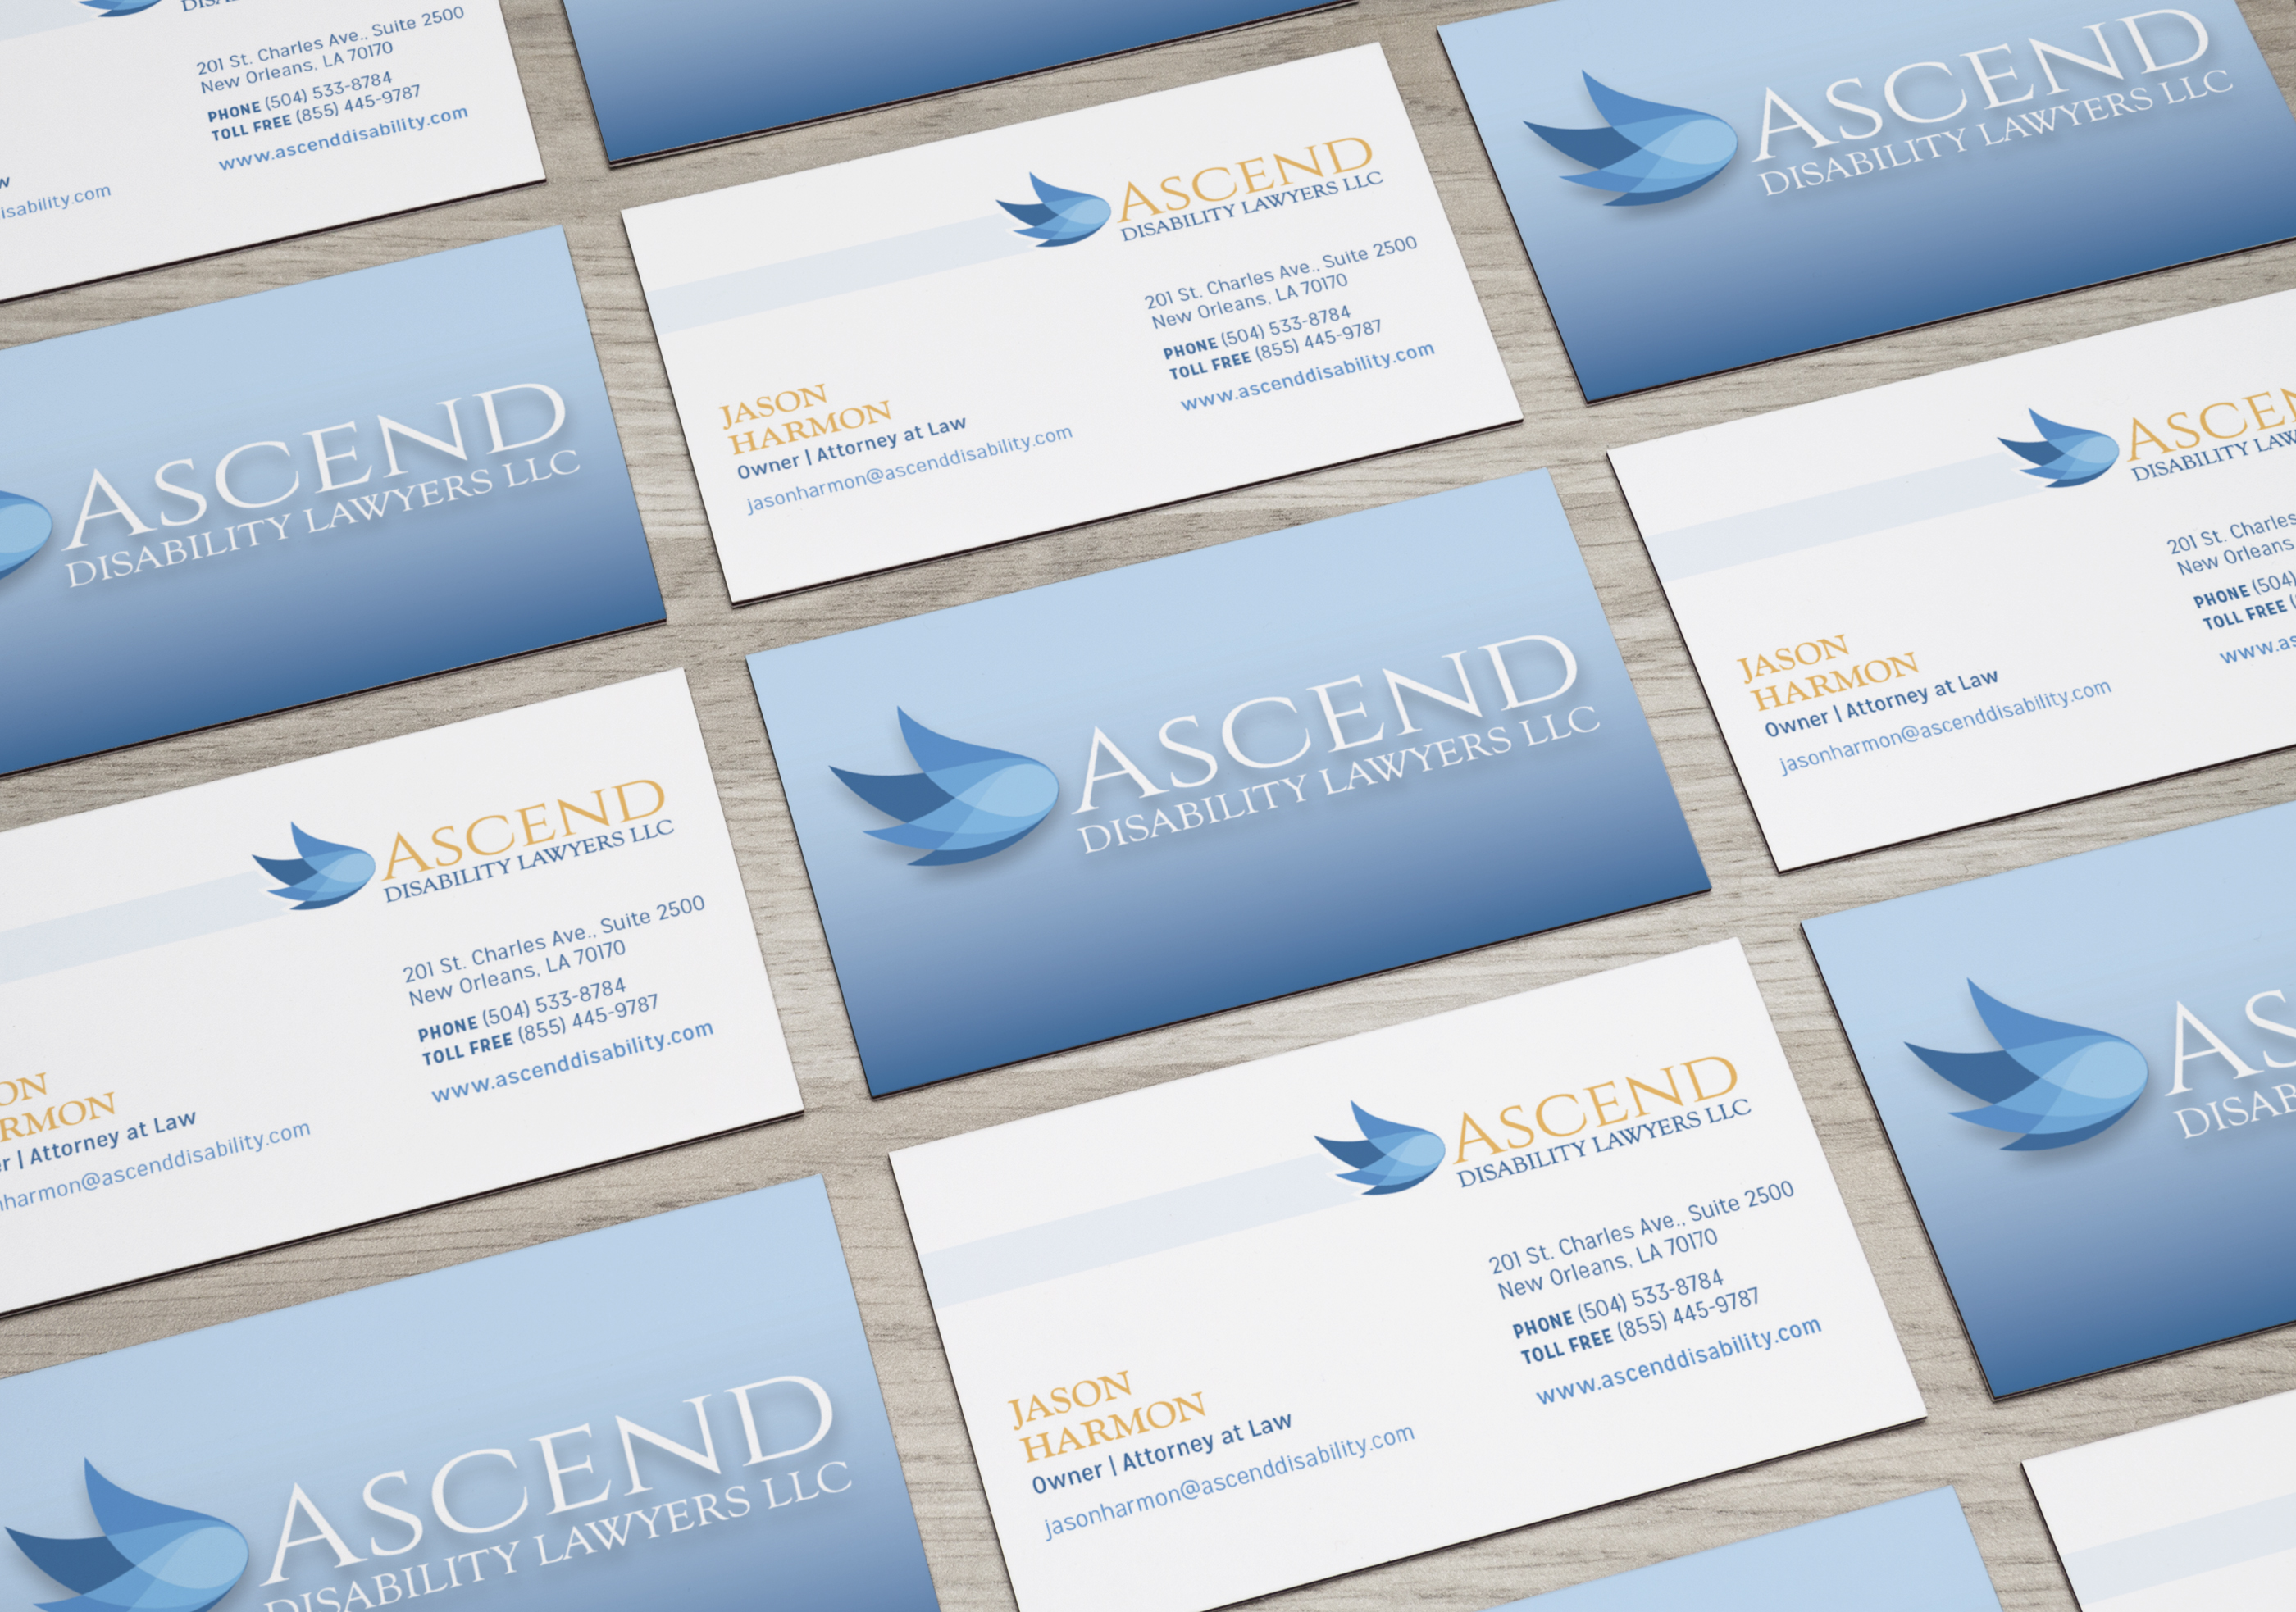 Custom graphic designs business cards design good work marketing ascend business card design new orleans graphic design colourmoves